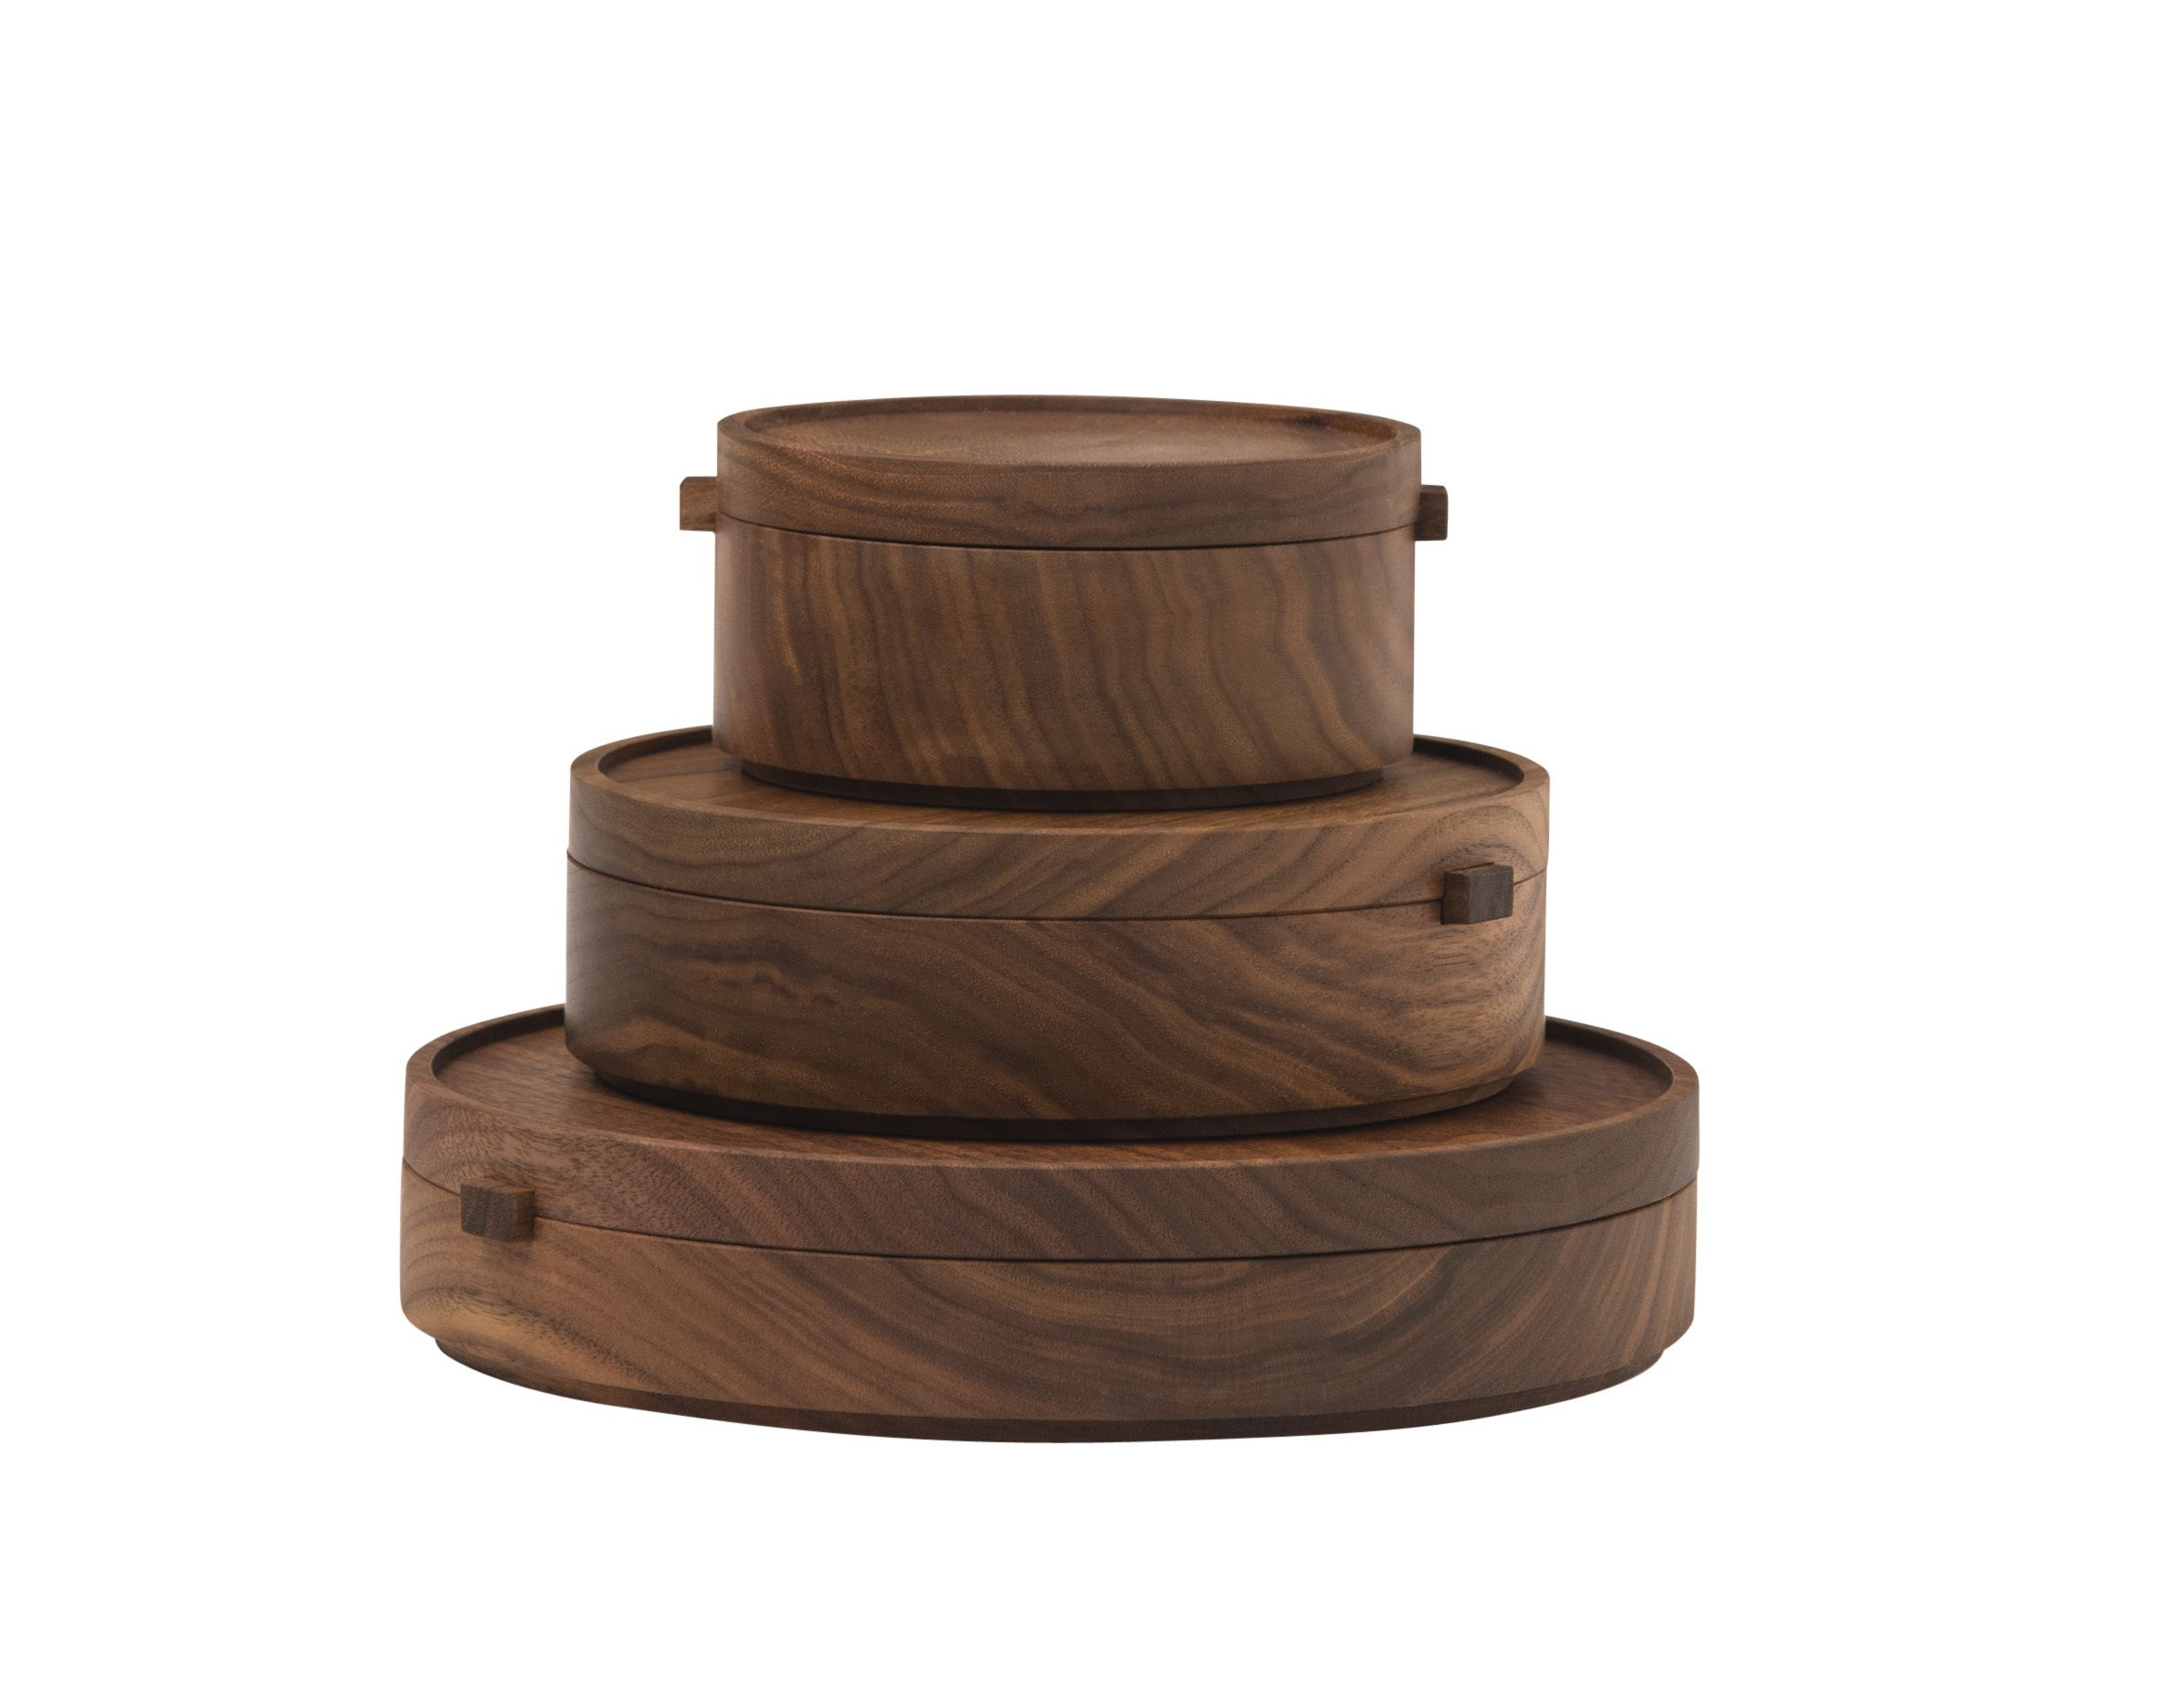 Stacks (2015) Thos. Moser Former professor Tom Moser left academia in 1972 to become a full-time woodworker, sourcing wood from the United States only. Today his furnishings company, based in Auburn, Maine, employs scores  of people. One set of Stacks boxes takes two weeks to complete.